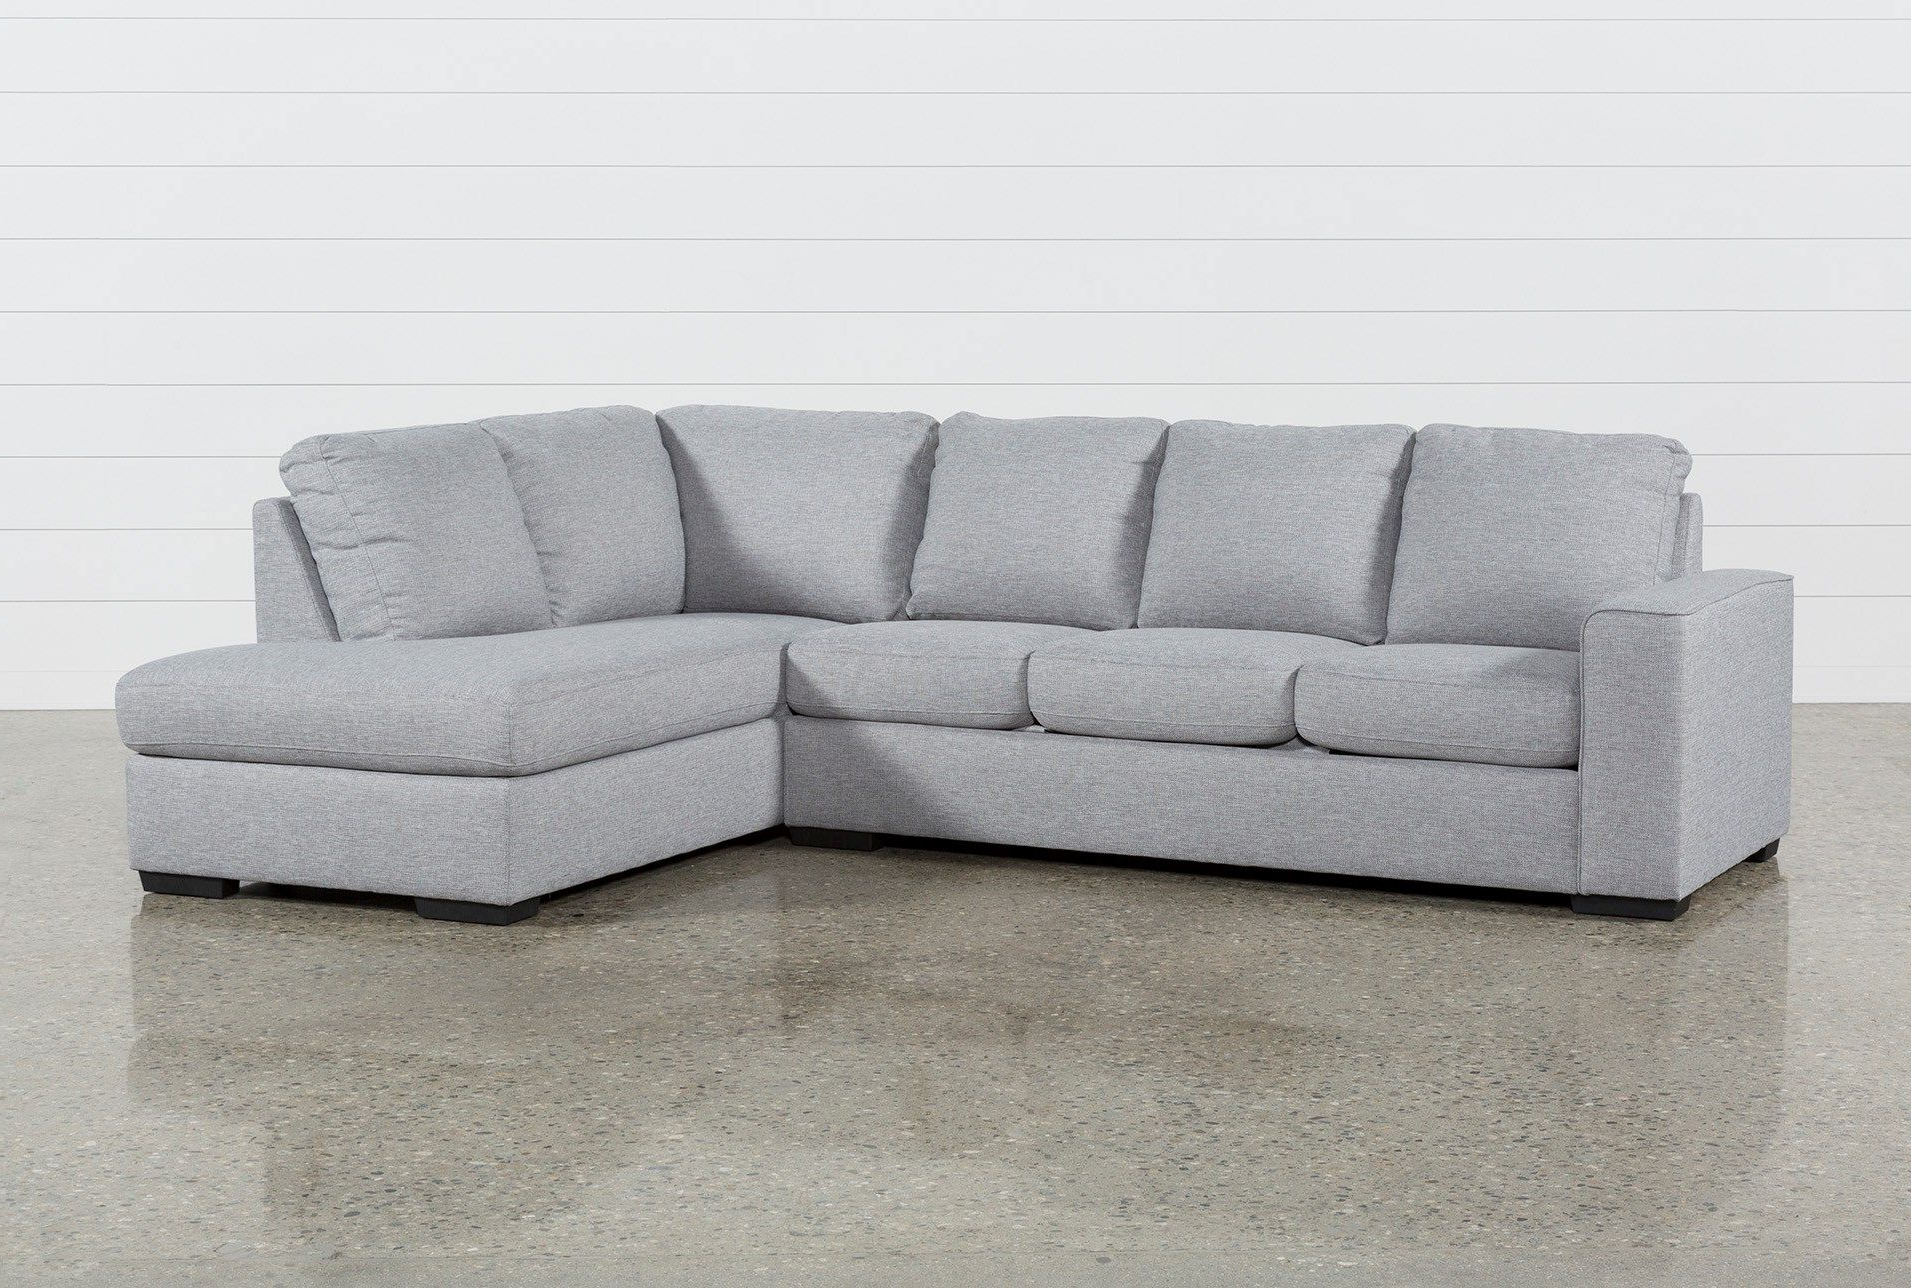 Lucy Dark Grey 2 Piece Sleeper Sectionals With Laf Chaise Pertaining To Current Lucy Grey 2 Piece Sleeper Sectional W/raf Chaise In (View 2 of 20)